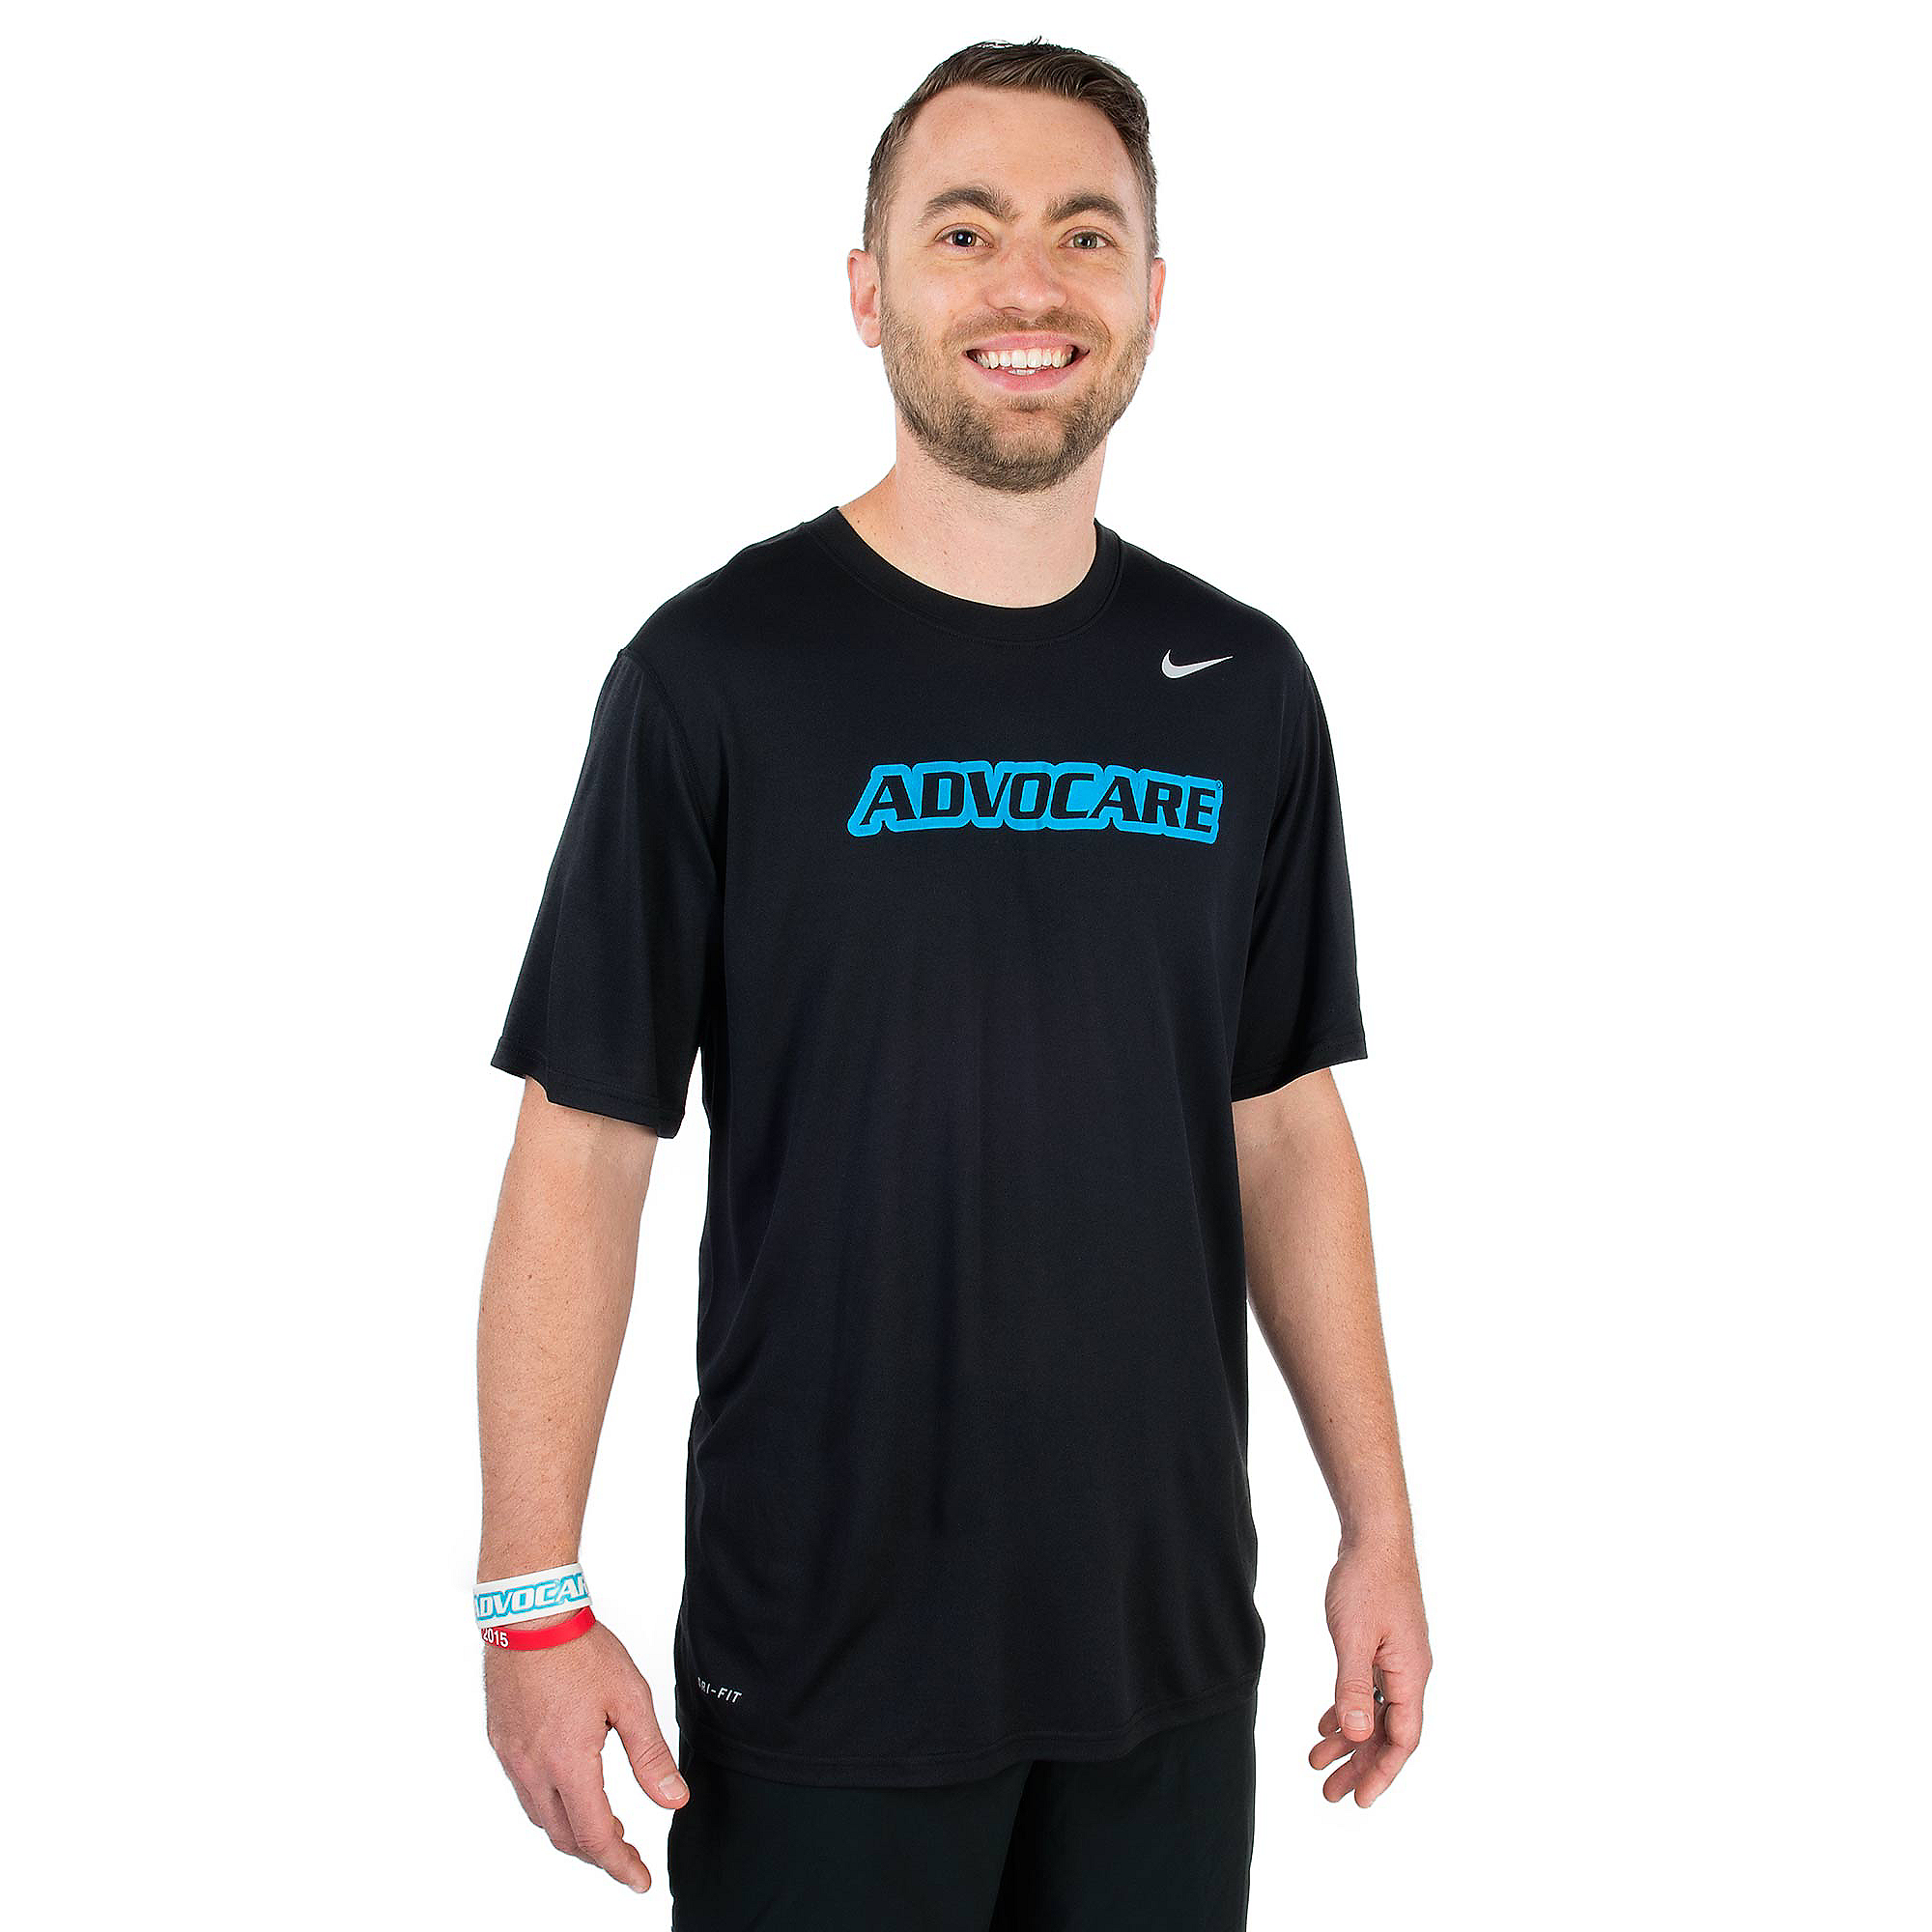 AdvoCare Legends Tee